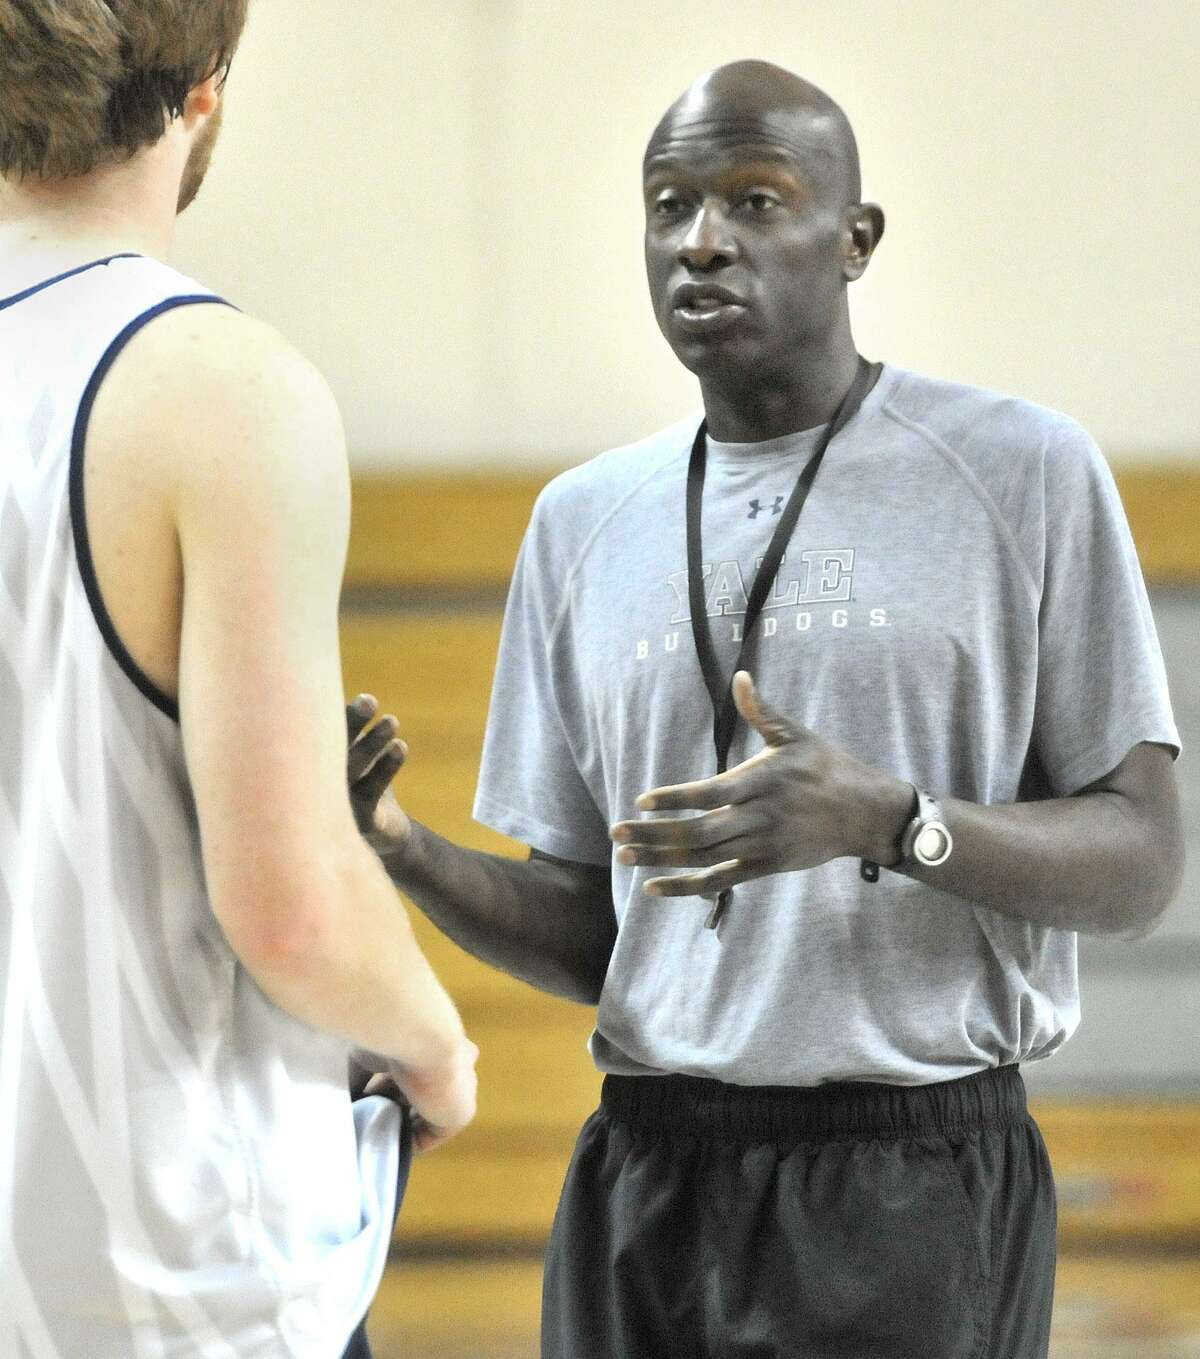 Yale coach James Jones interviewed for the St. John's job on Thursday. Mike Anderson got the job. Photo by Brad Horrigan/New Haven Register-05.13.11.